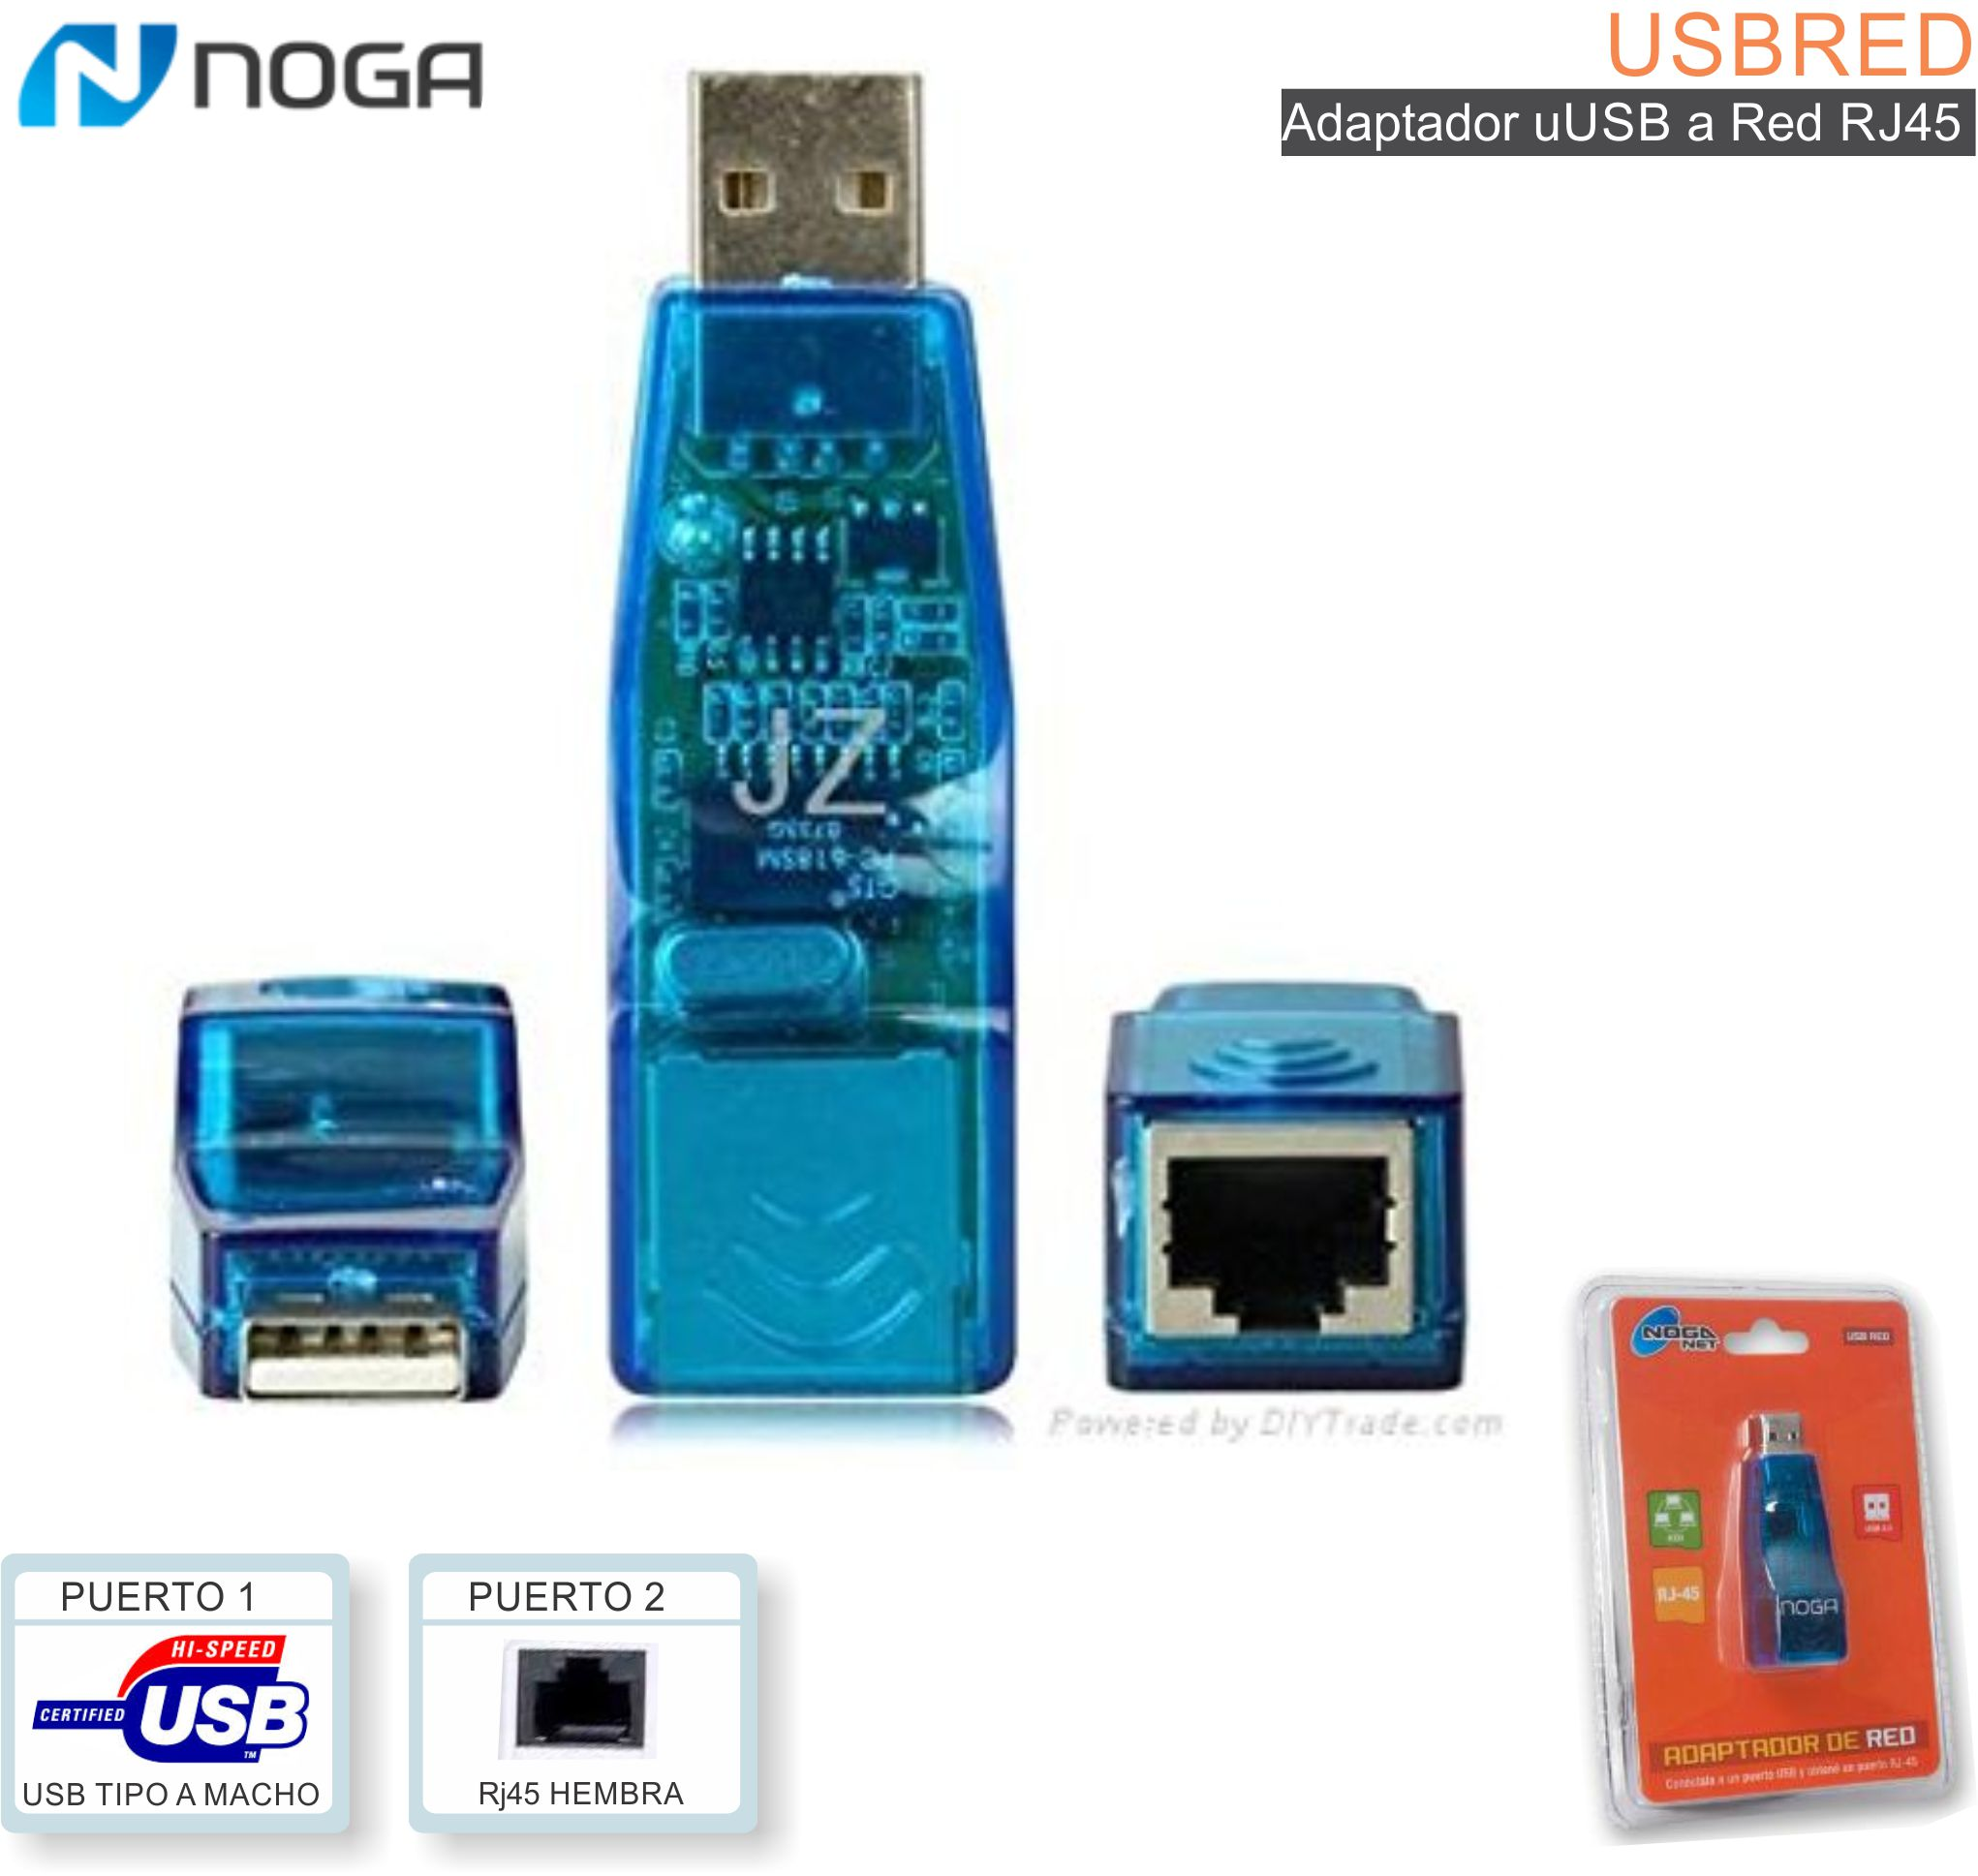 Adaptador USB a Red RJ45 NOGA USBRED